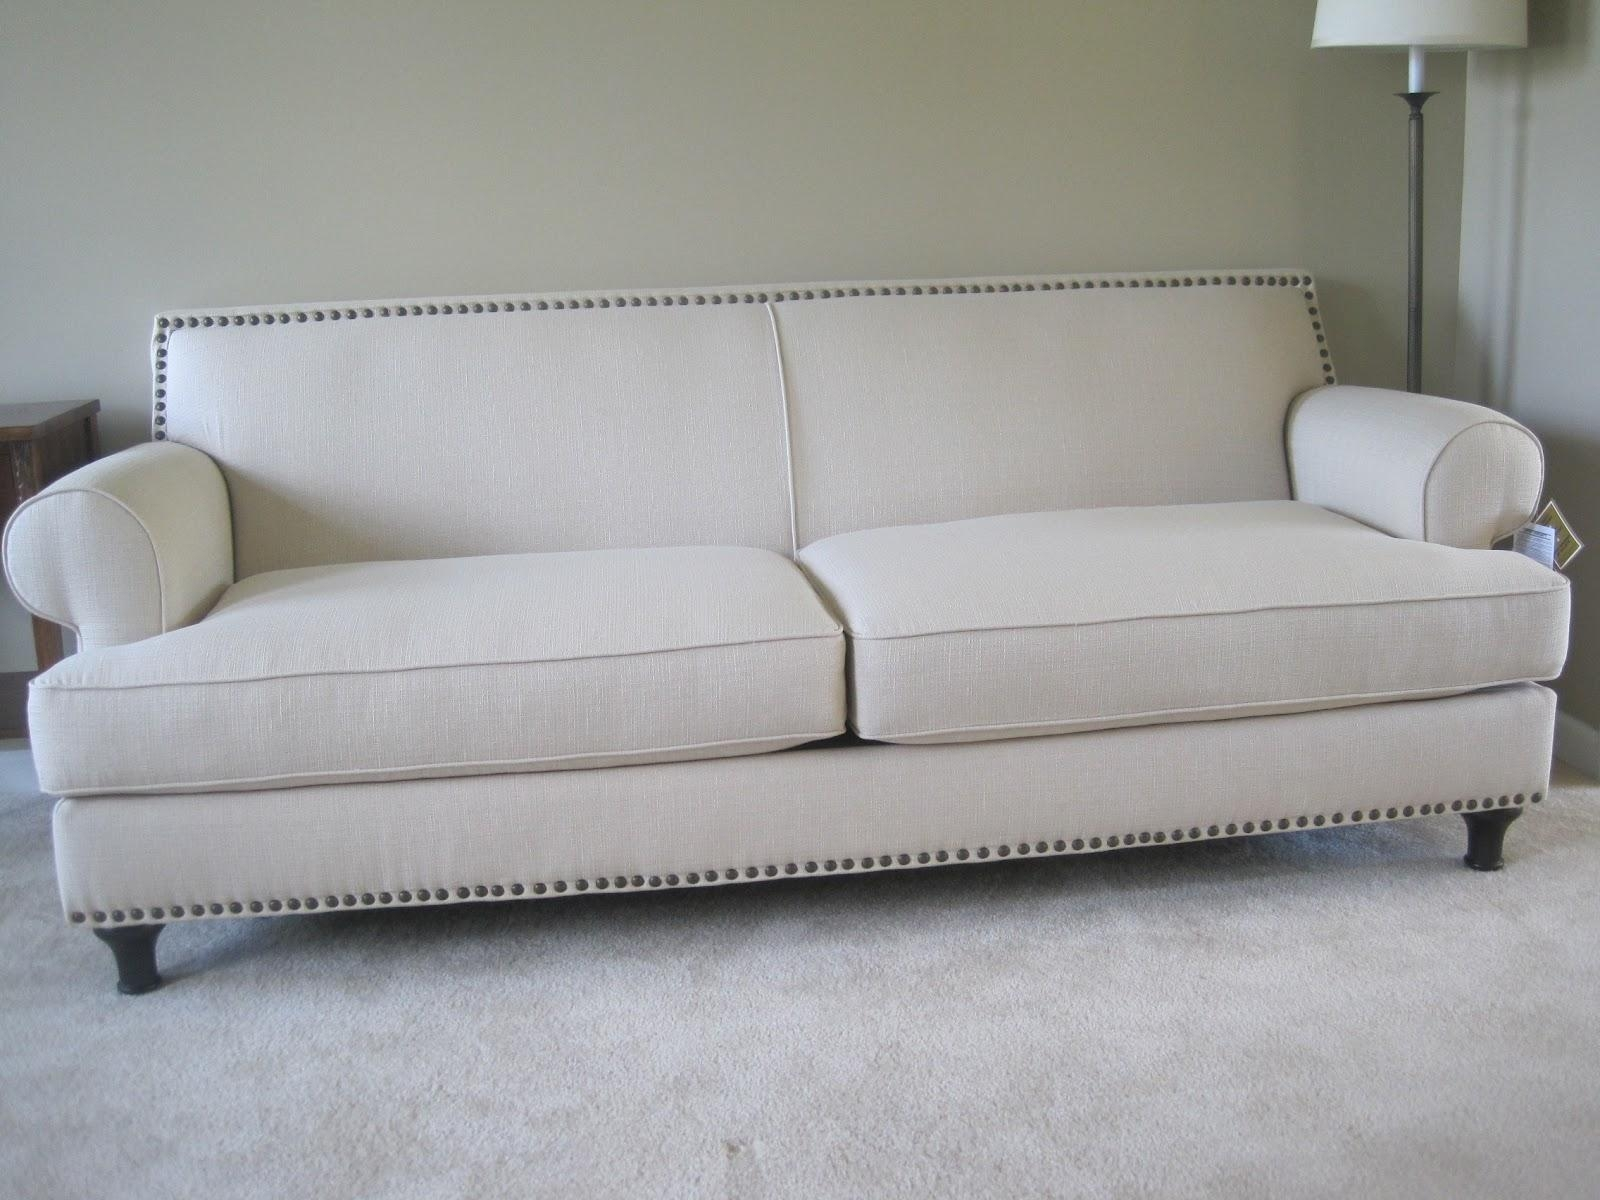 Designed To Dwell: So Fa Ortunate! With Pier 1 Carmen Sofas (View 2 of 20)